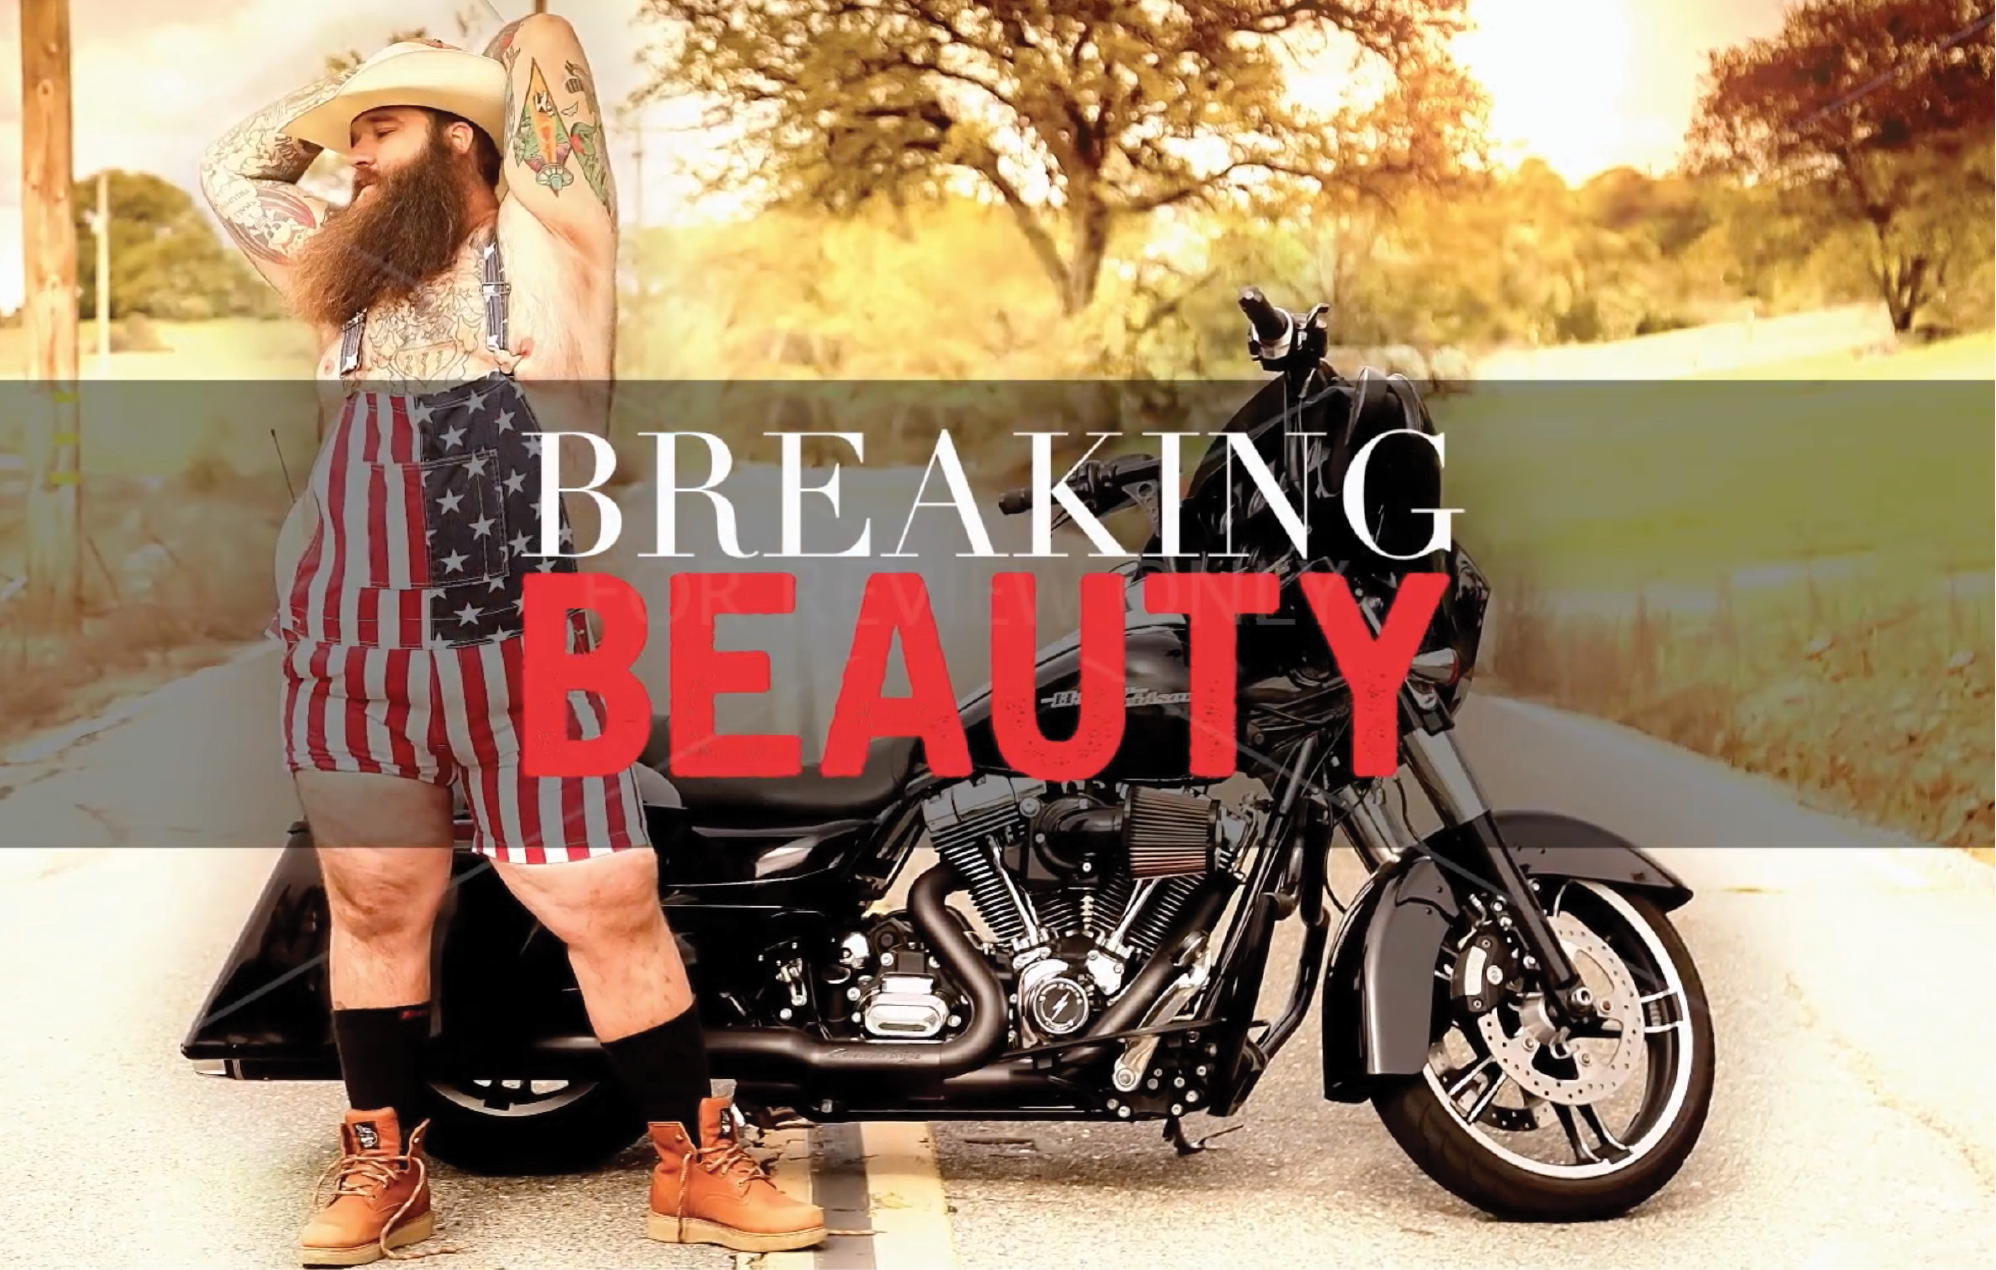 NEW SHOW - Breaking Beauty: Coming NOV 2020 to Crackle TV